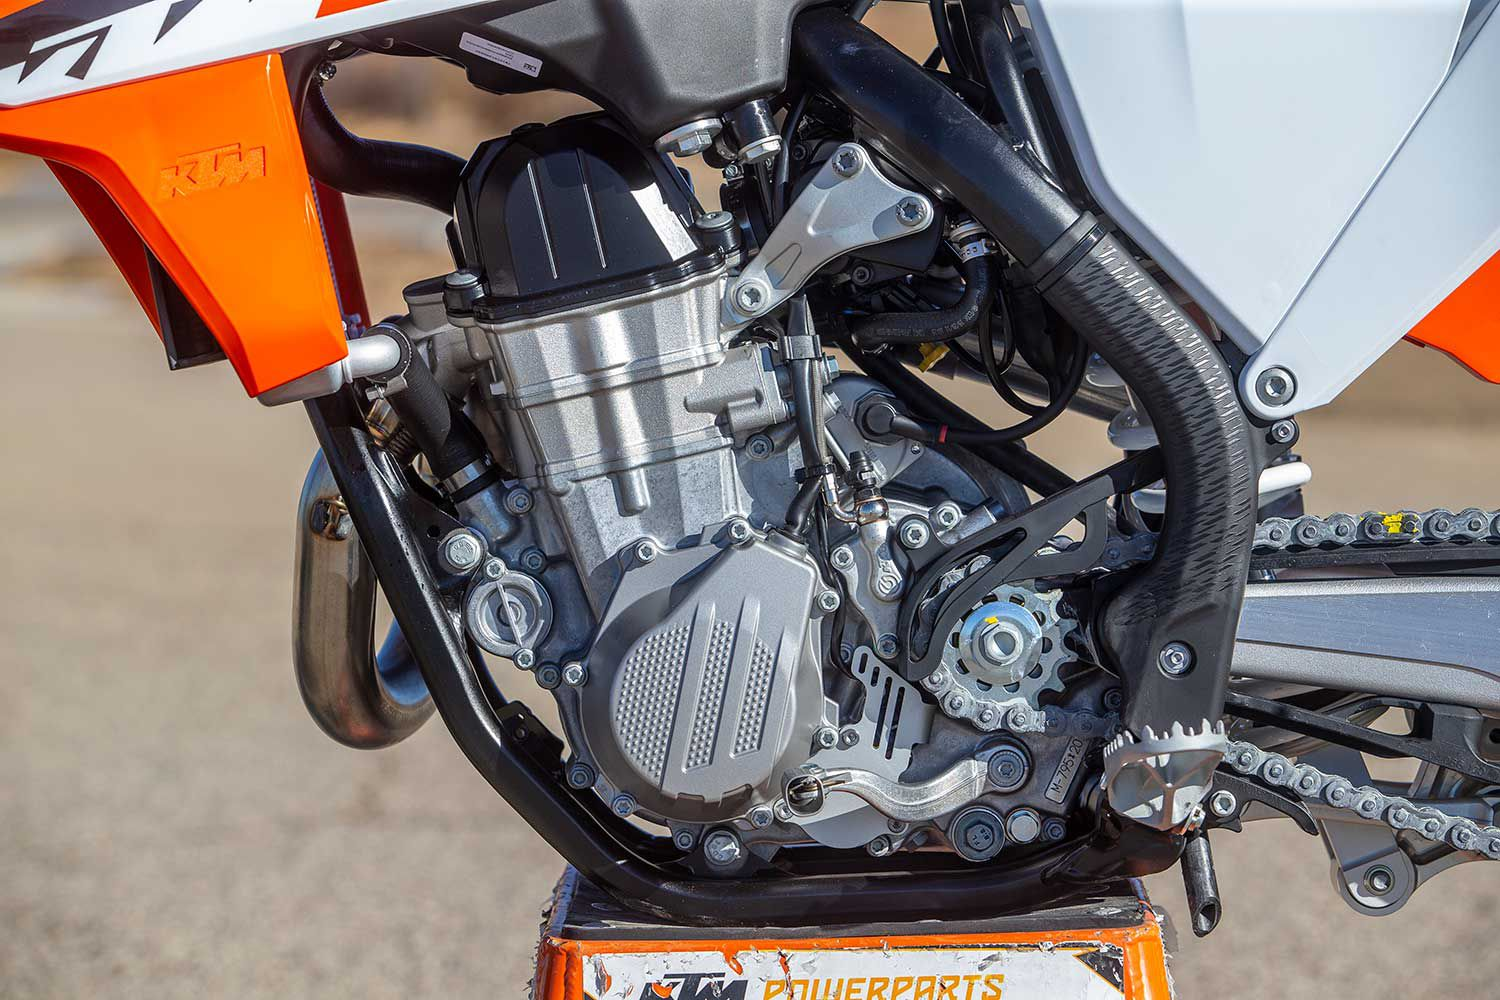 The SMR is powered by KTM's 449cc single that's good for nearly 55 ponies at the tire. The engine is water-cooled and fuel injected. Plus it benefits from electric start.